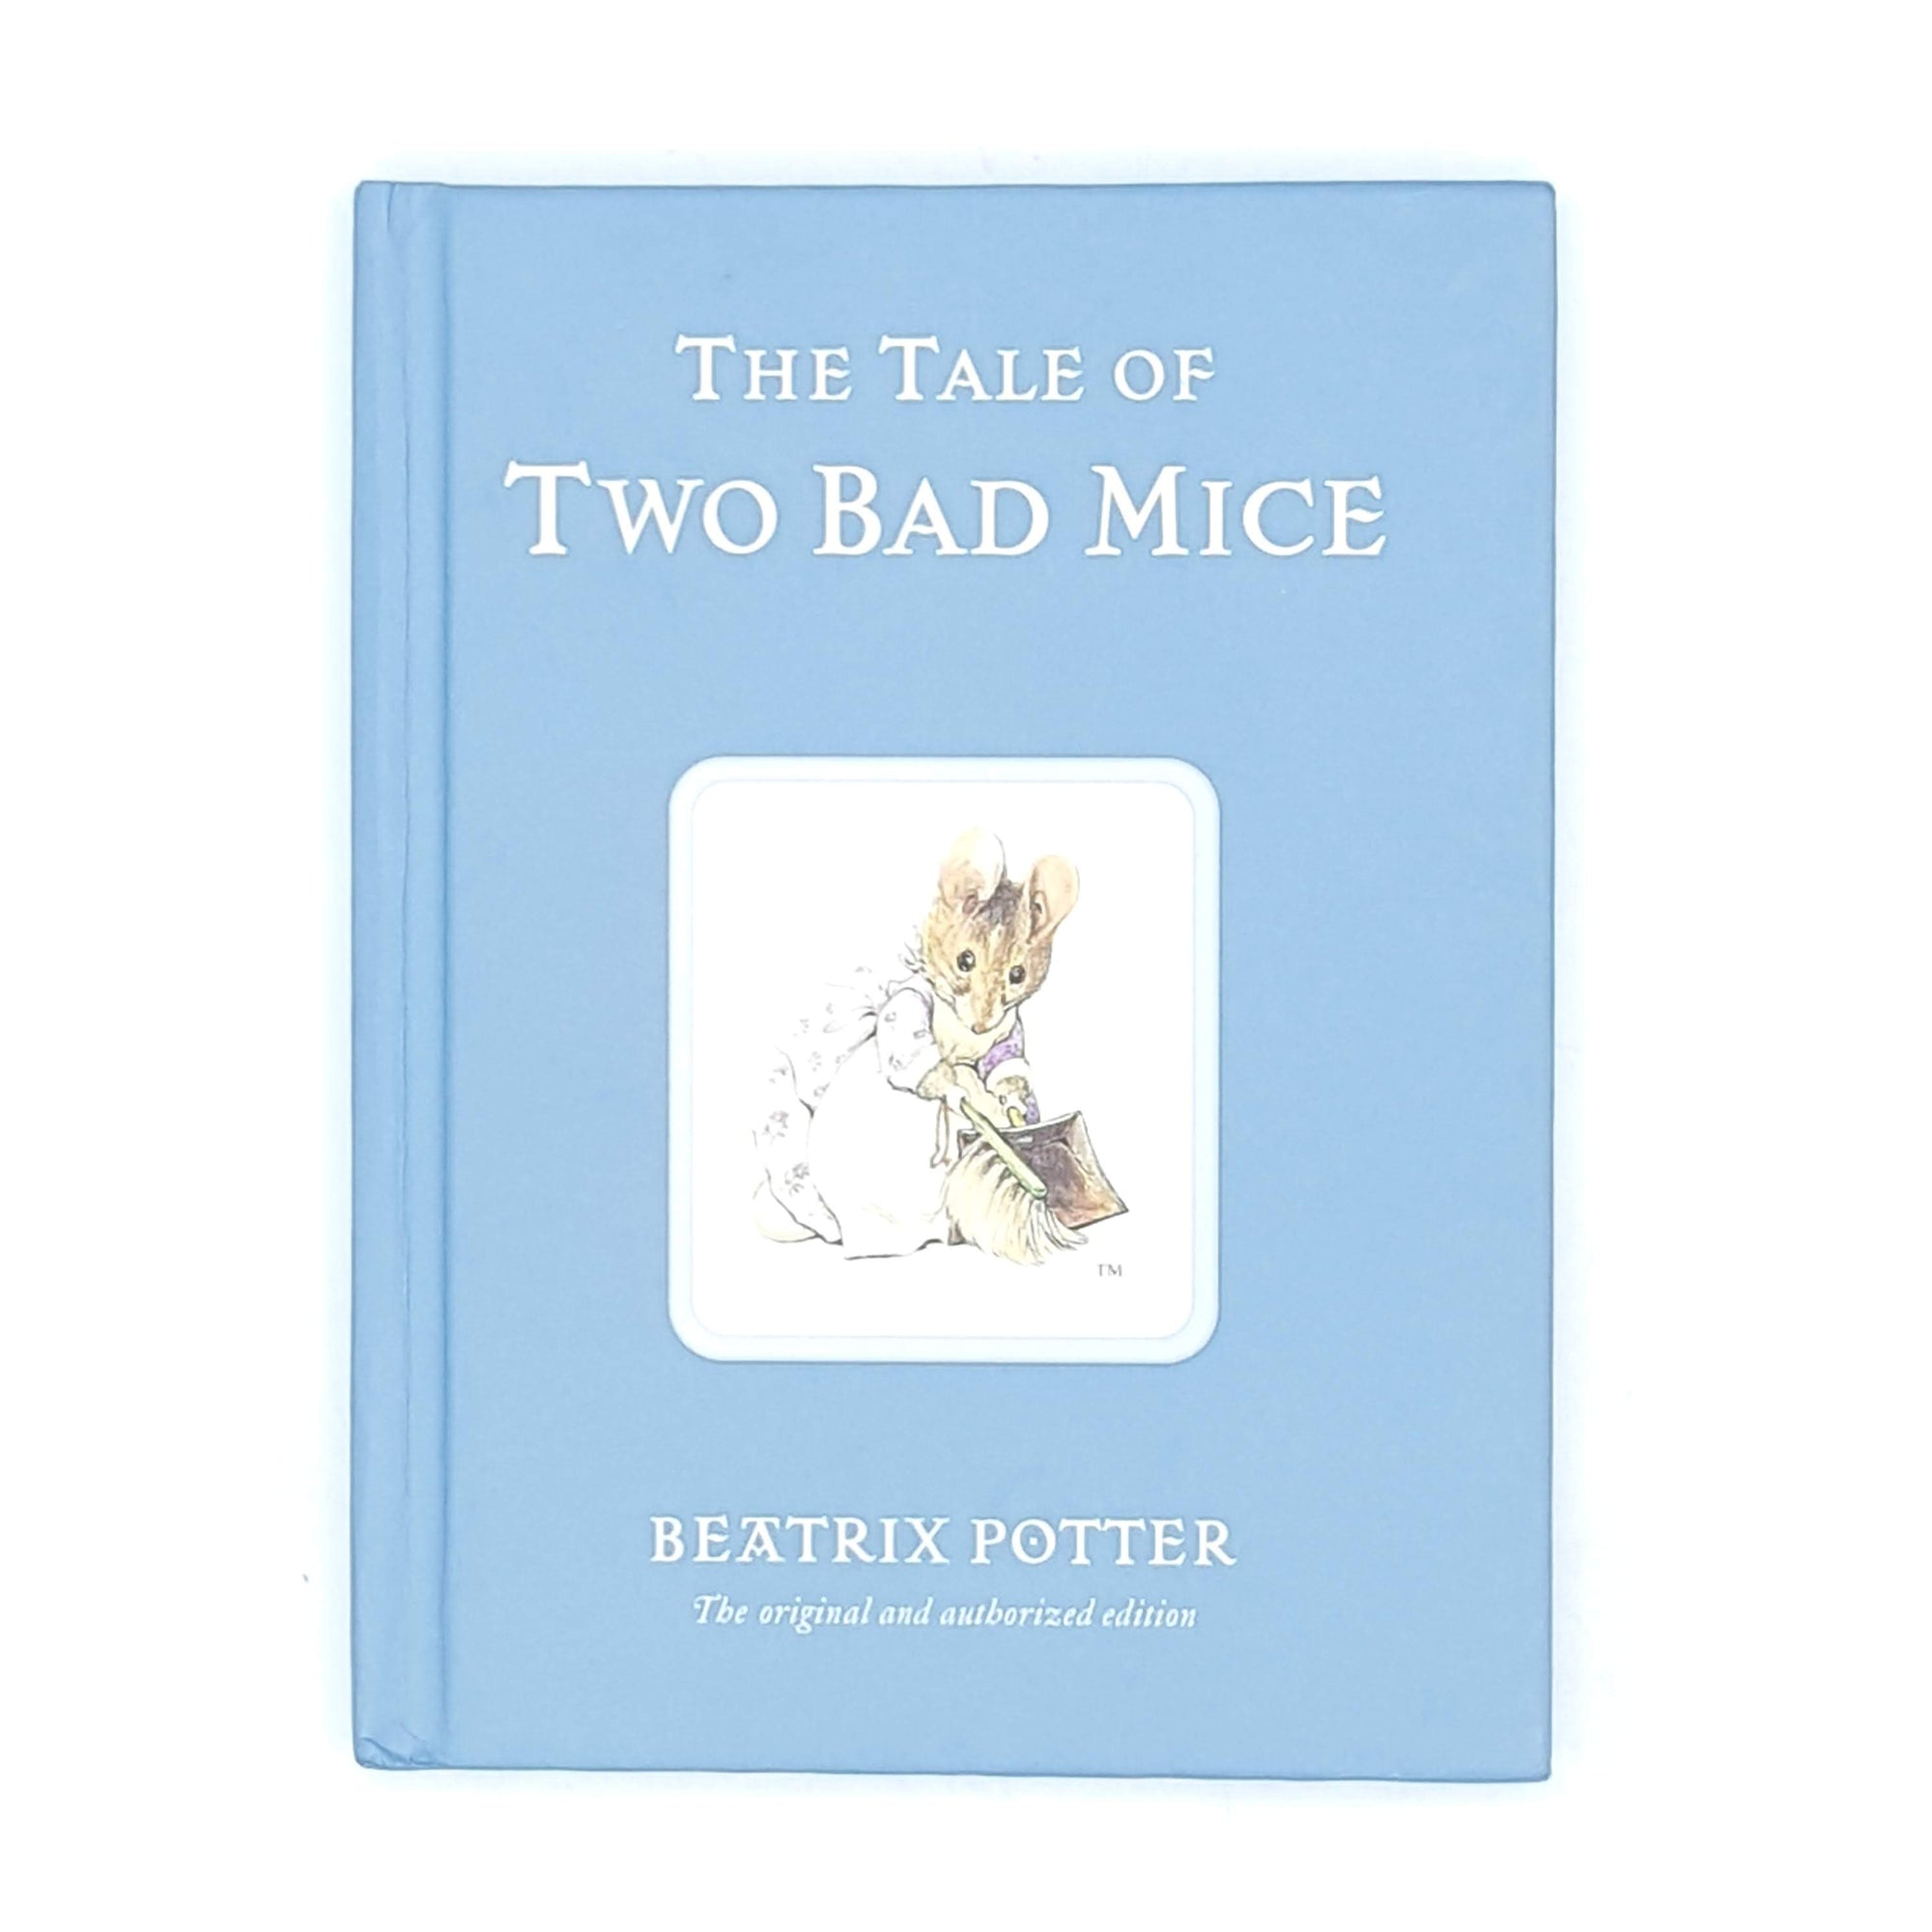 vintage-books-antique-classic-patterned-thrift-decorative-illustrated-country-house-library-old-beatrix-potter-two-bad-mice-blue-childrens-